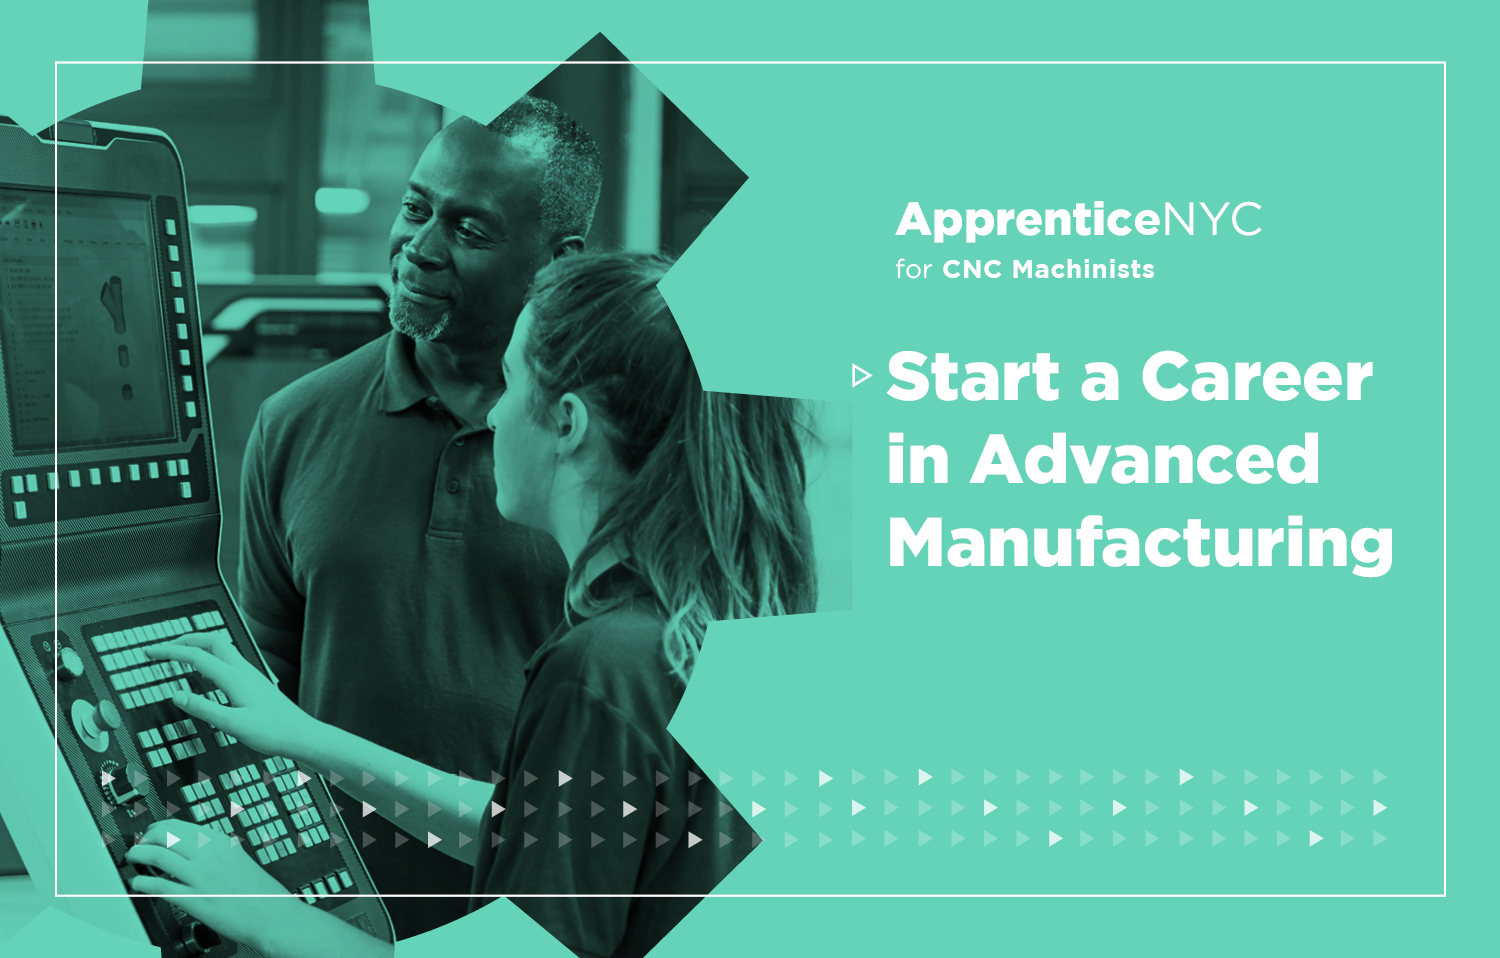 ApprenticeNYC for CNC Machinists. Start a Career in Advanced Manufacturing